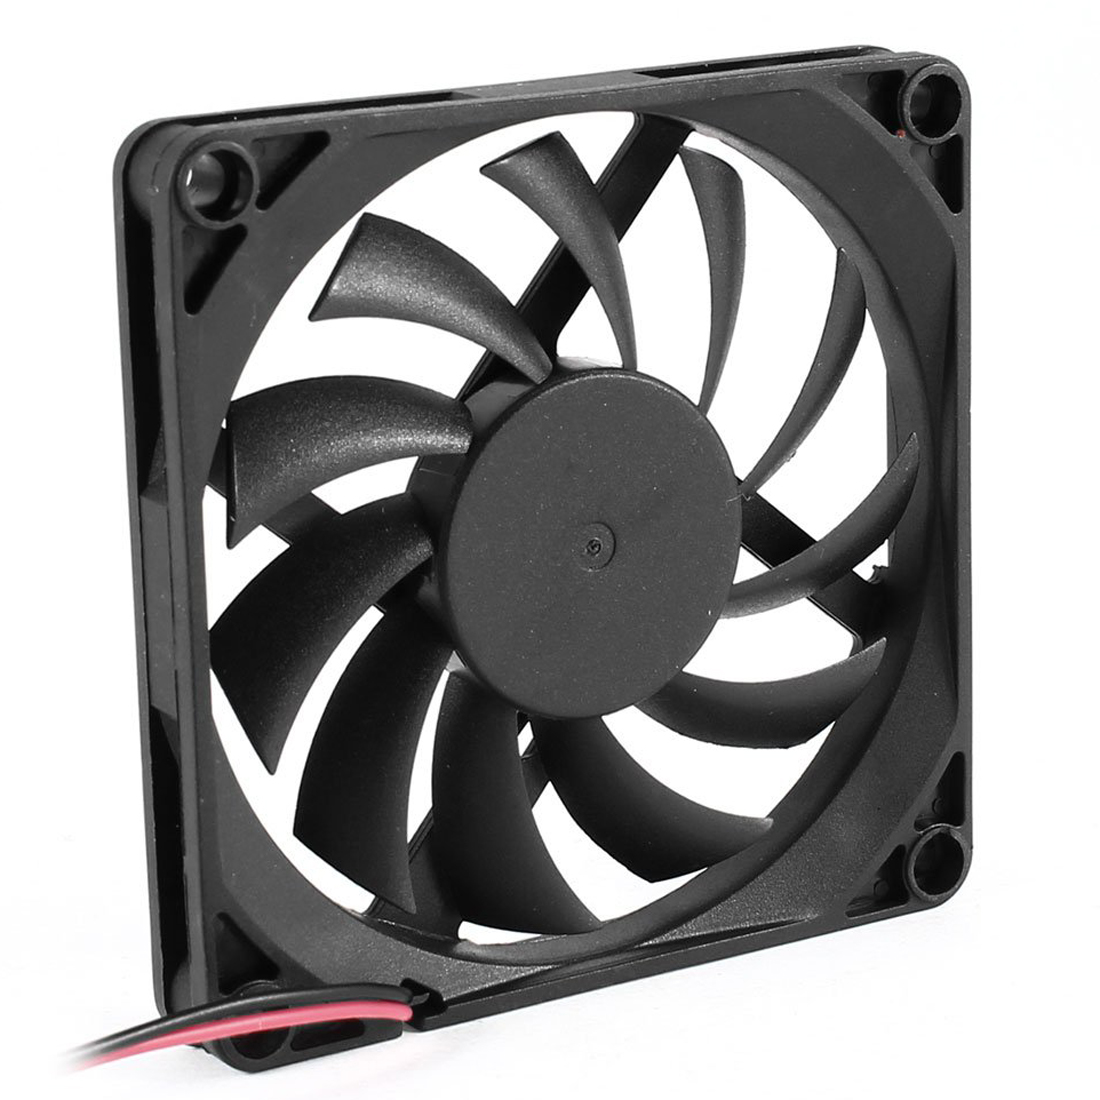 Hot 80mm 2 Pin Connector Cooling Fan for Computer Case CPU Cooler Radiator computer cooler radiator with heatsink heatpipe cooling fan for hd6970 hd6950 grahics card vga cooler